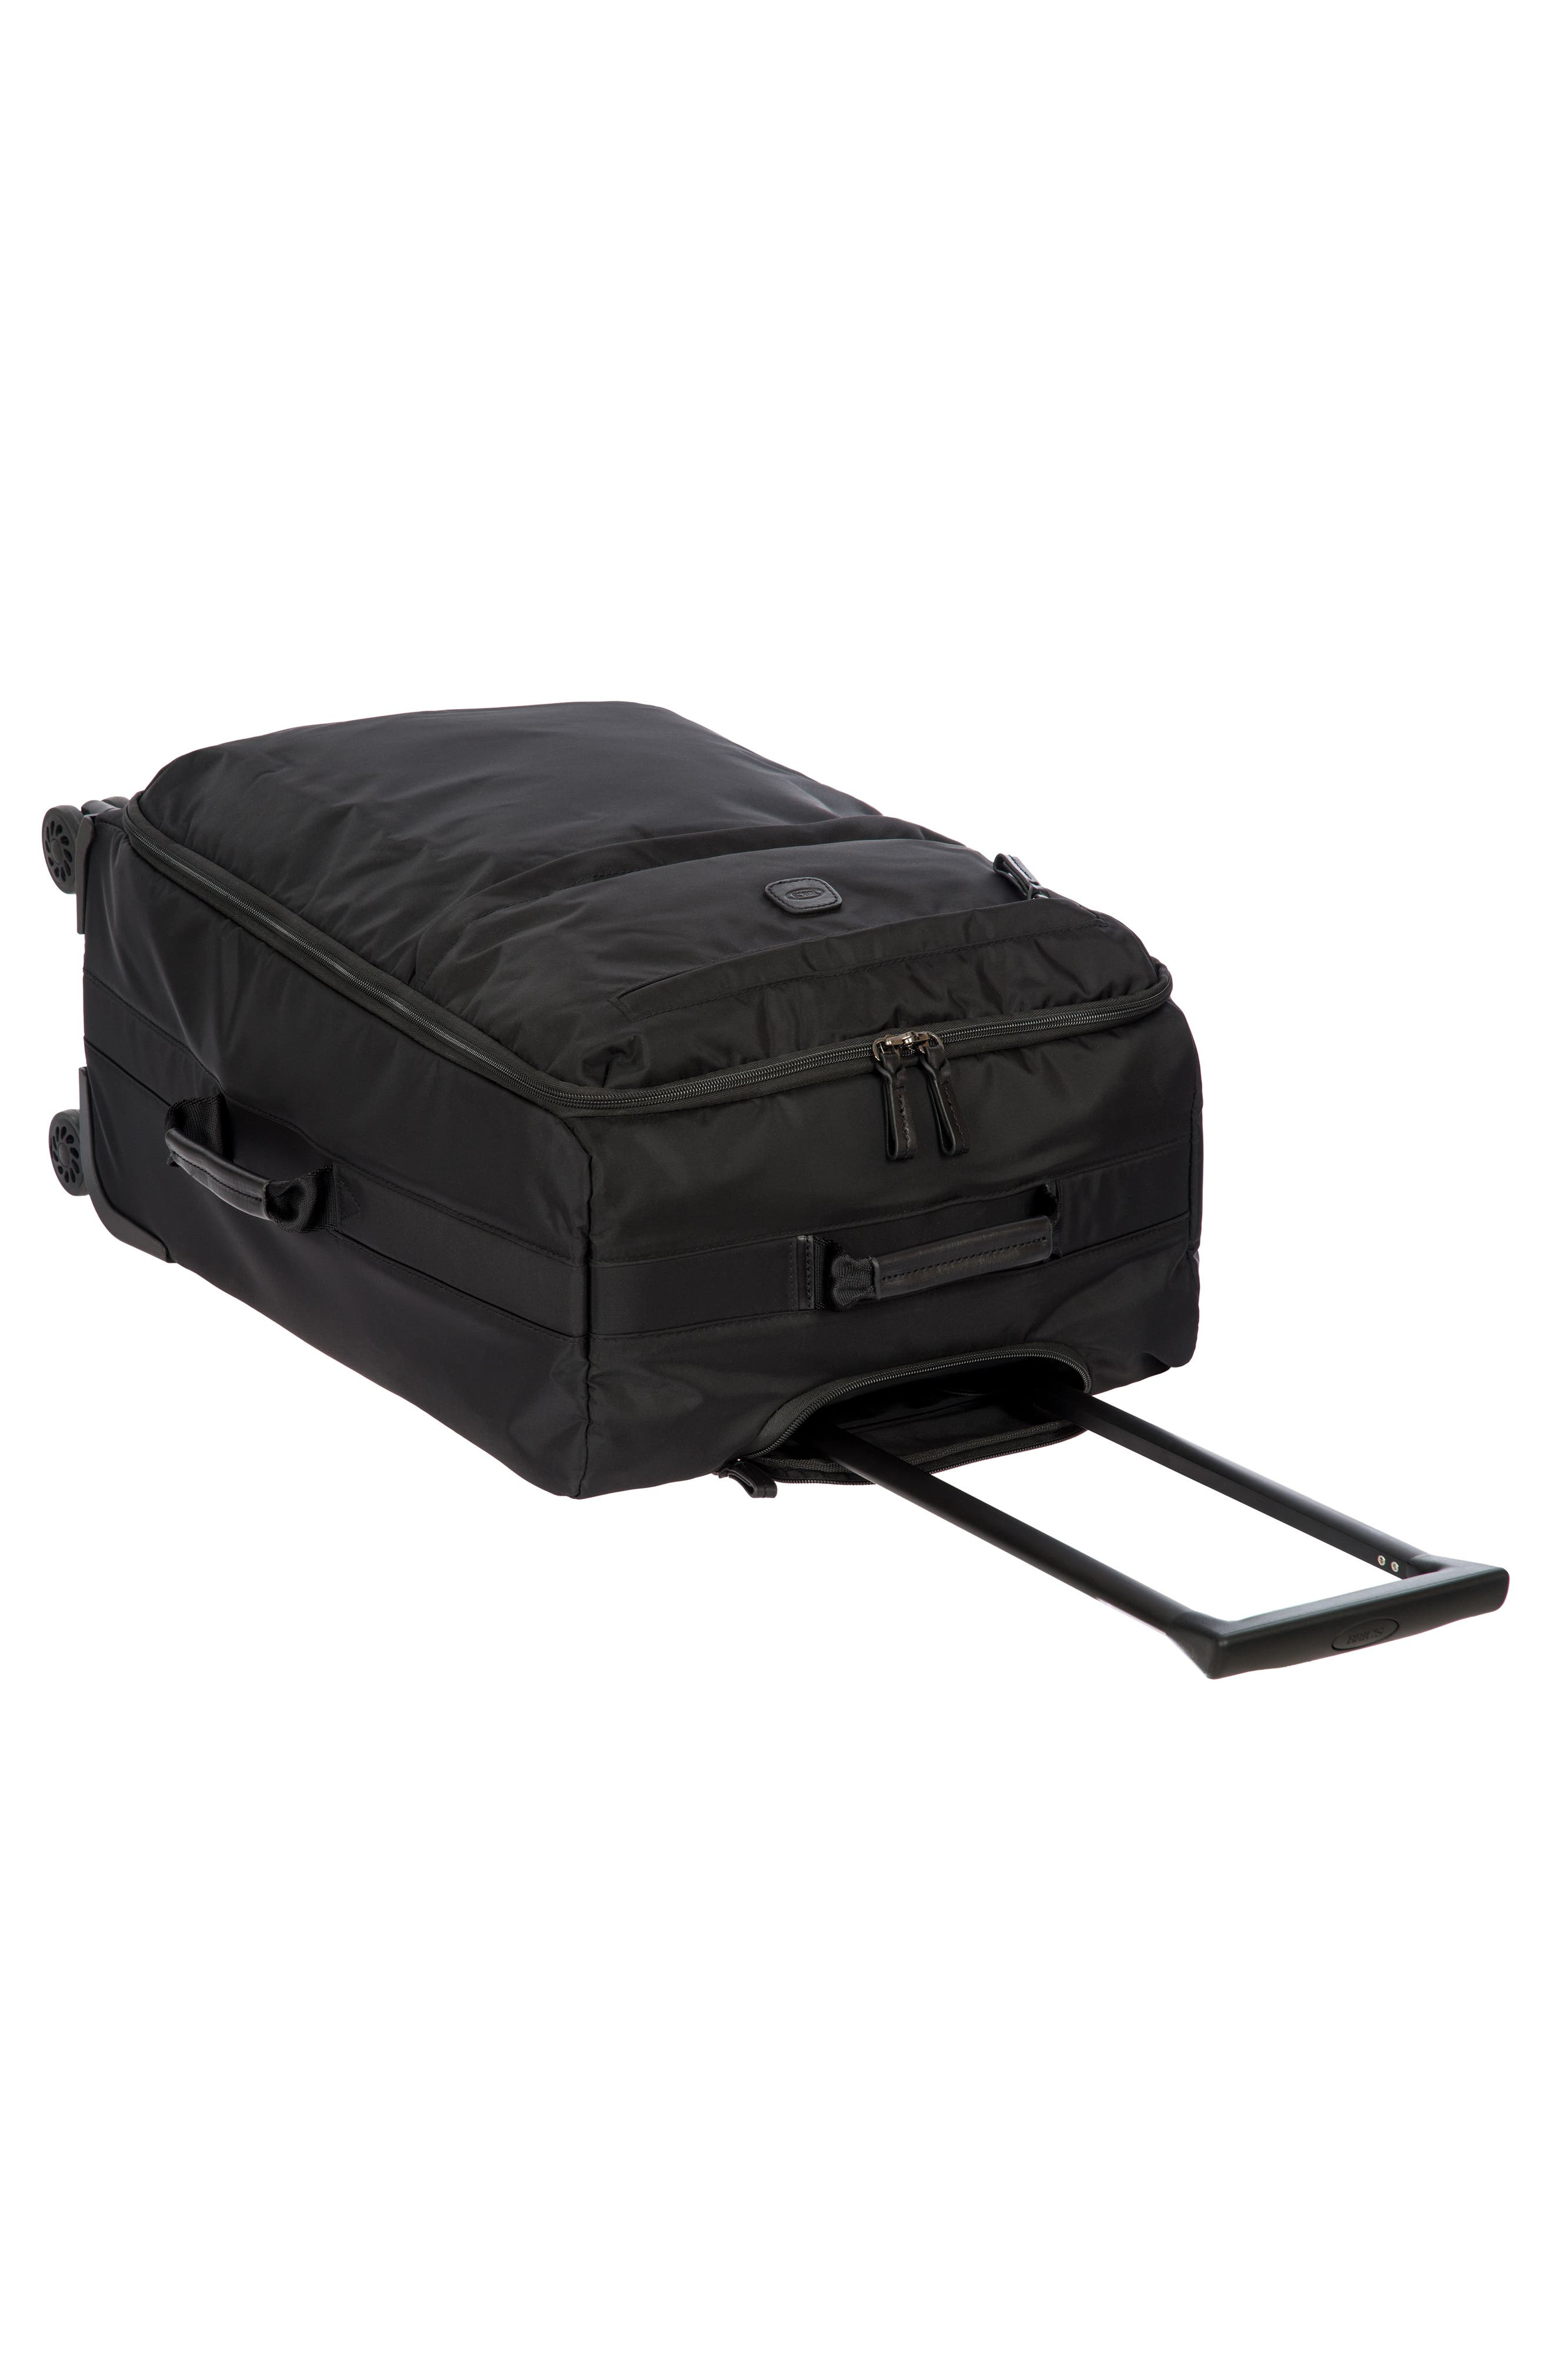 X-Bag 25-Inch Spinner Suitcase,                             Alternate thumbnail 4, color,                             Black/ Black